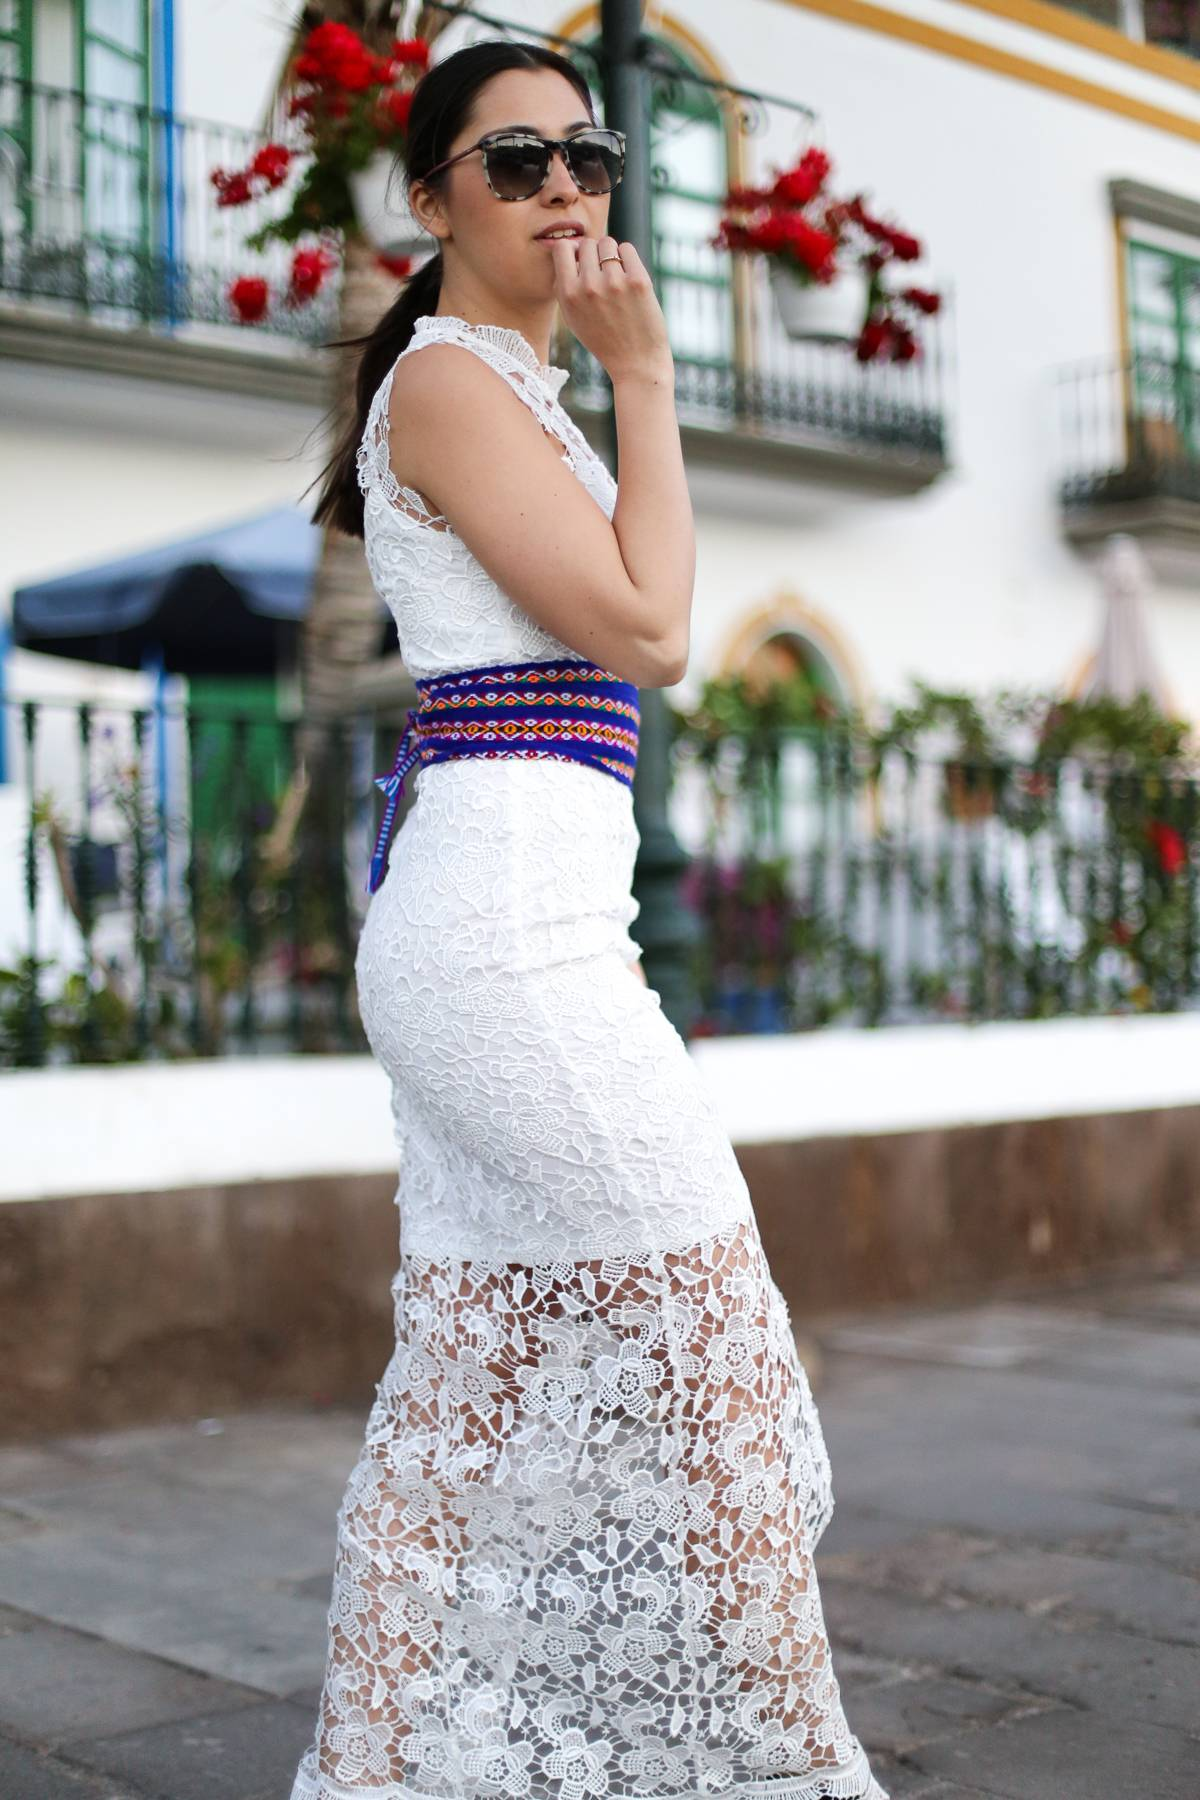 Streetstyle - Puerto de Mogán - Travel - German Fashionblogger - Summerlook - White Lace - Maxi Dress - Ethno Details - Black Sandals - Gucci - Inspiration - Stilmix